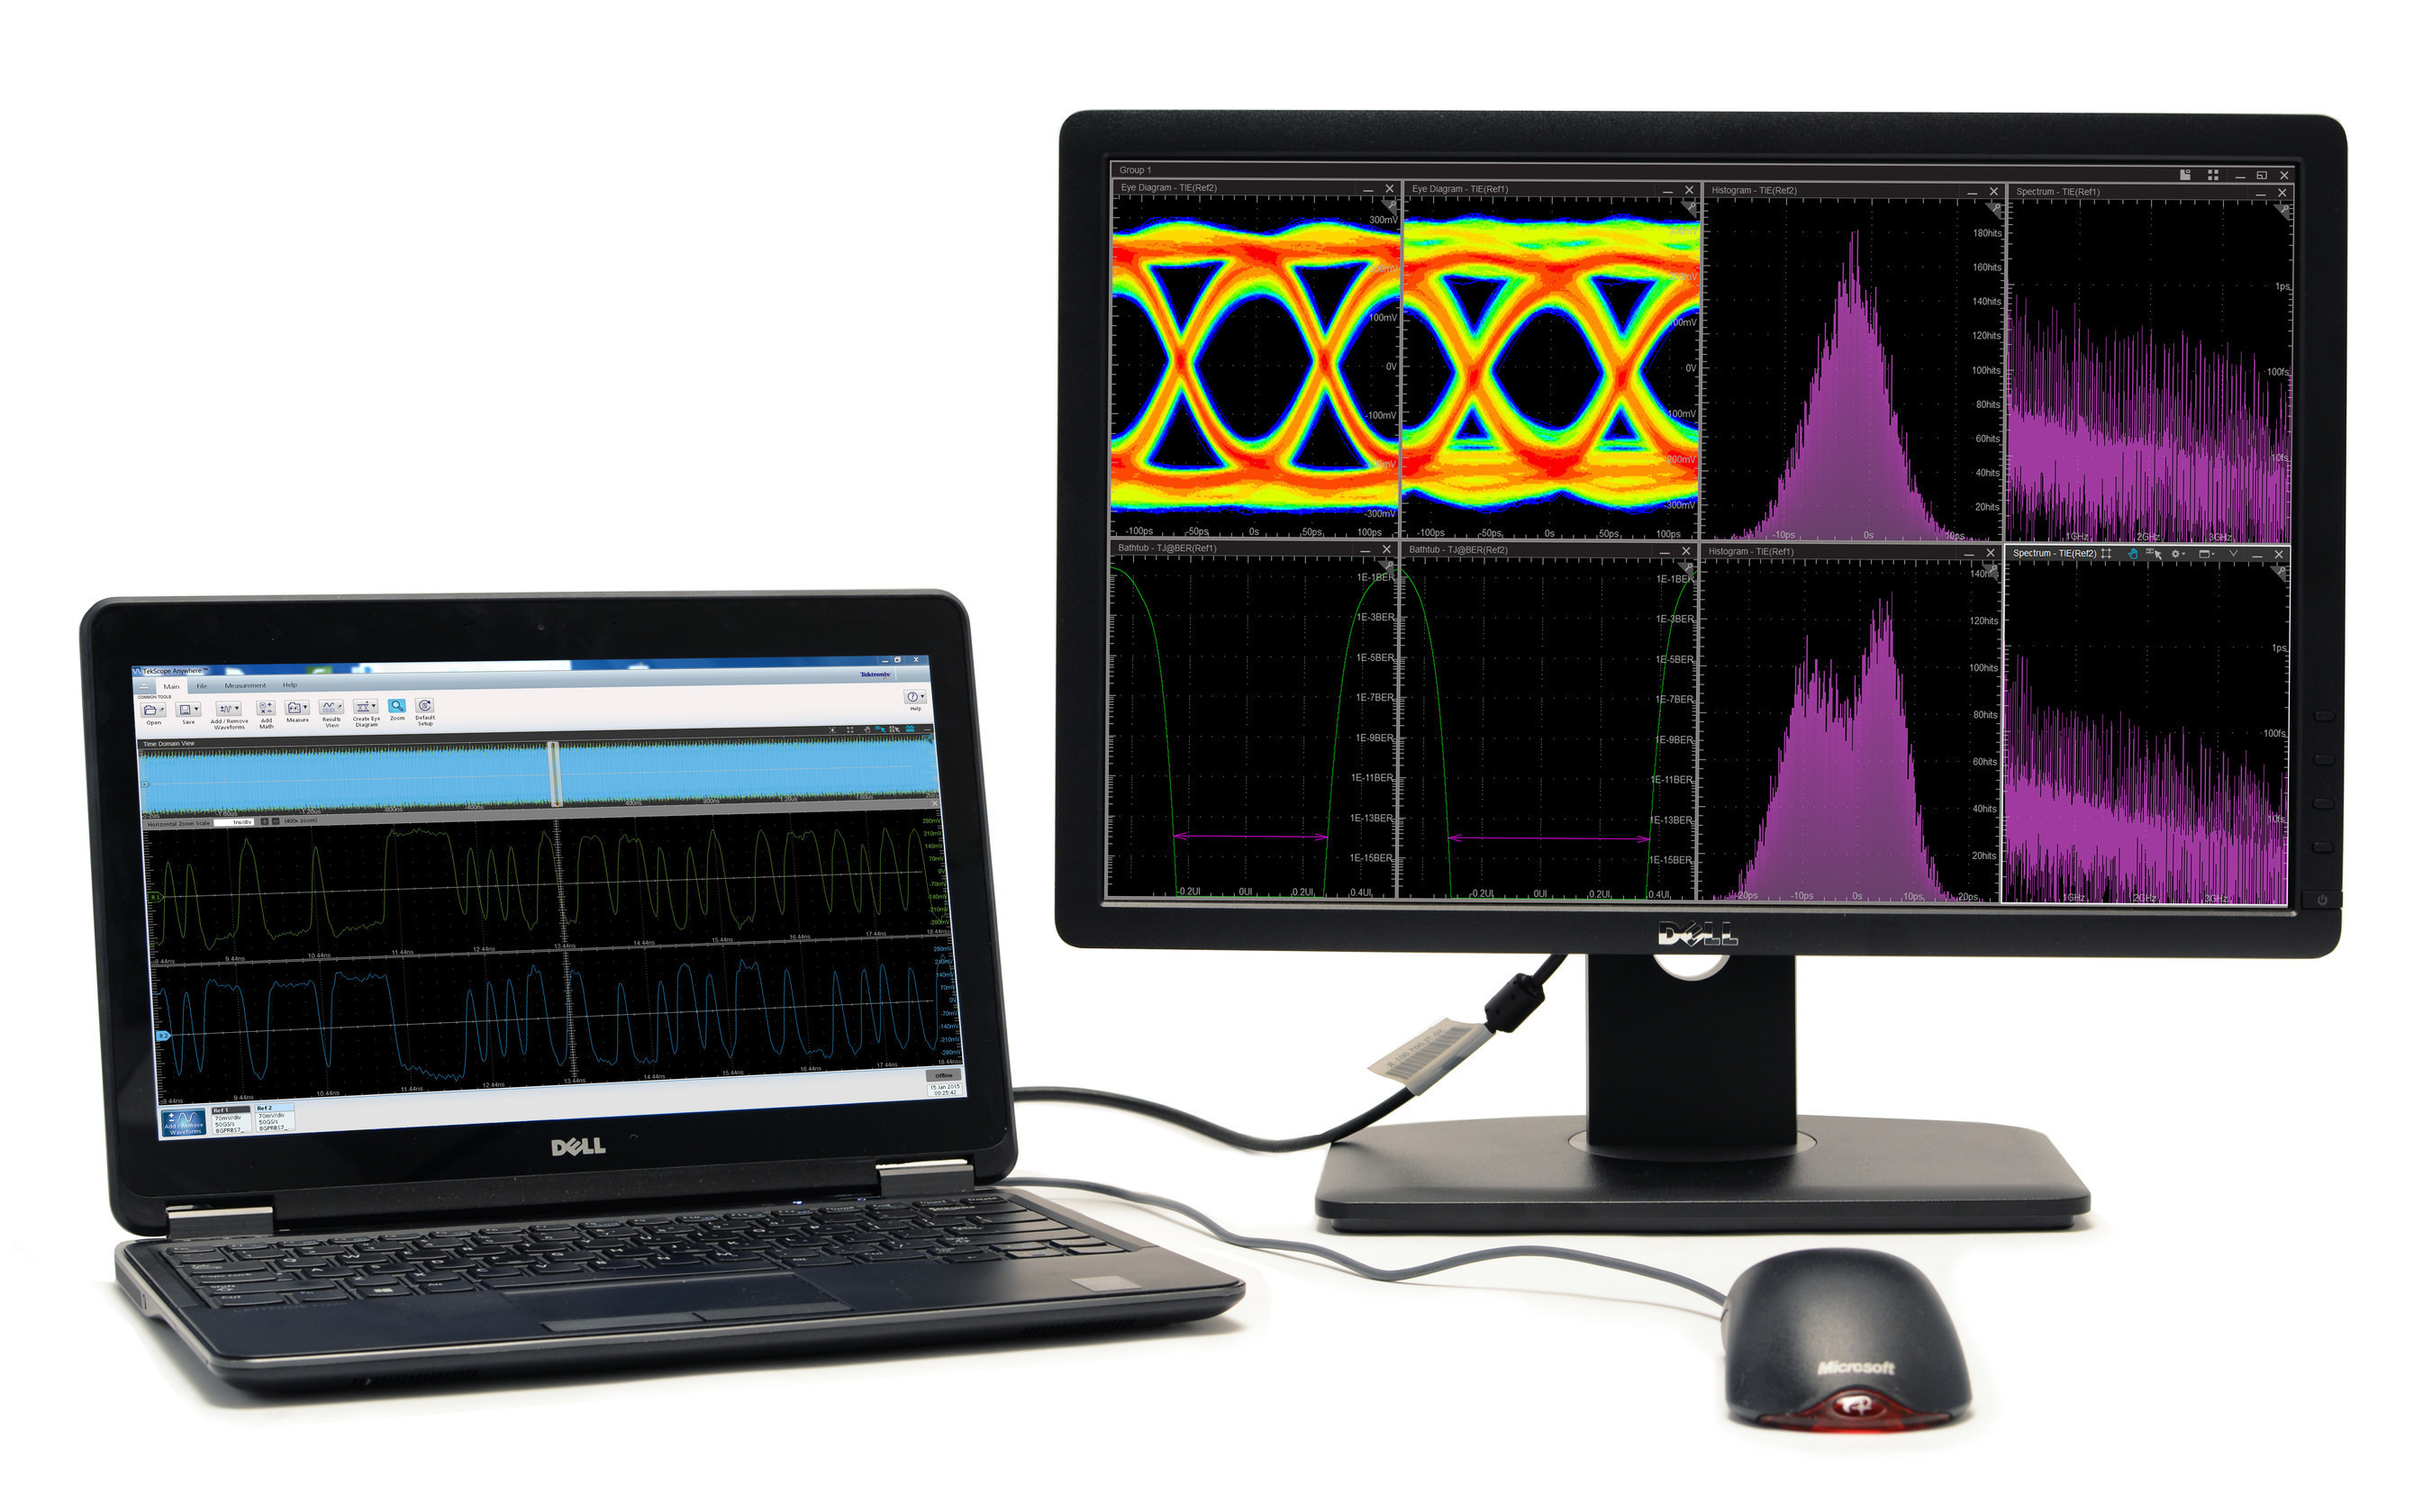 TekScope Anywhere, a new software offering that extends the visualization, analysis, and reporting capabilities found on Tektronix oscilloscopes to Microsoft Windows-based PCs, tablets and servers. TekScope Anywhere enables users to collect, analyze and collaborate without being tied to the instruments in their lab.